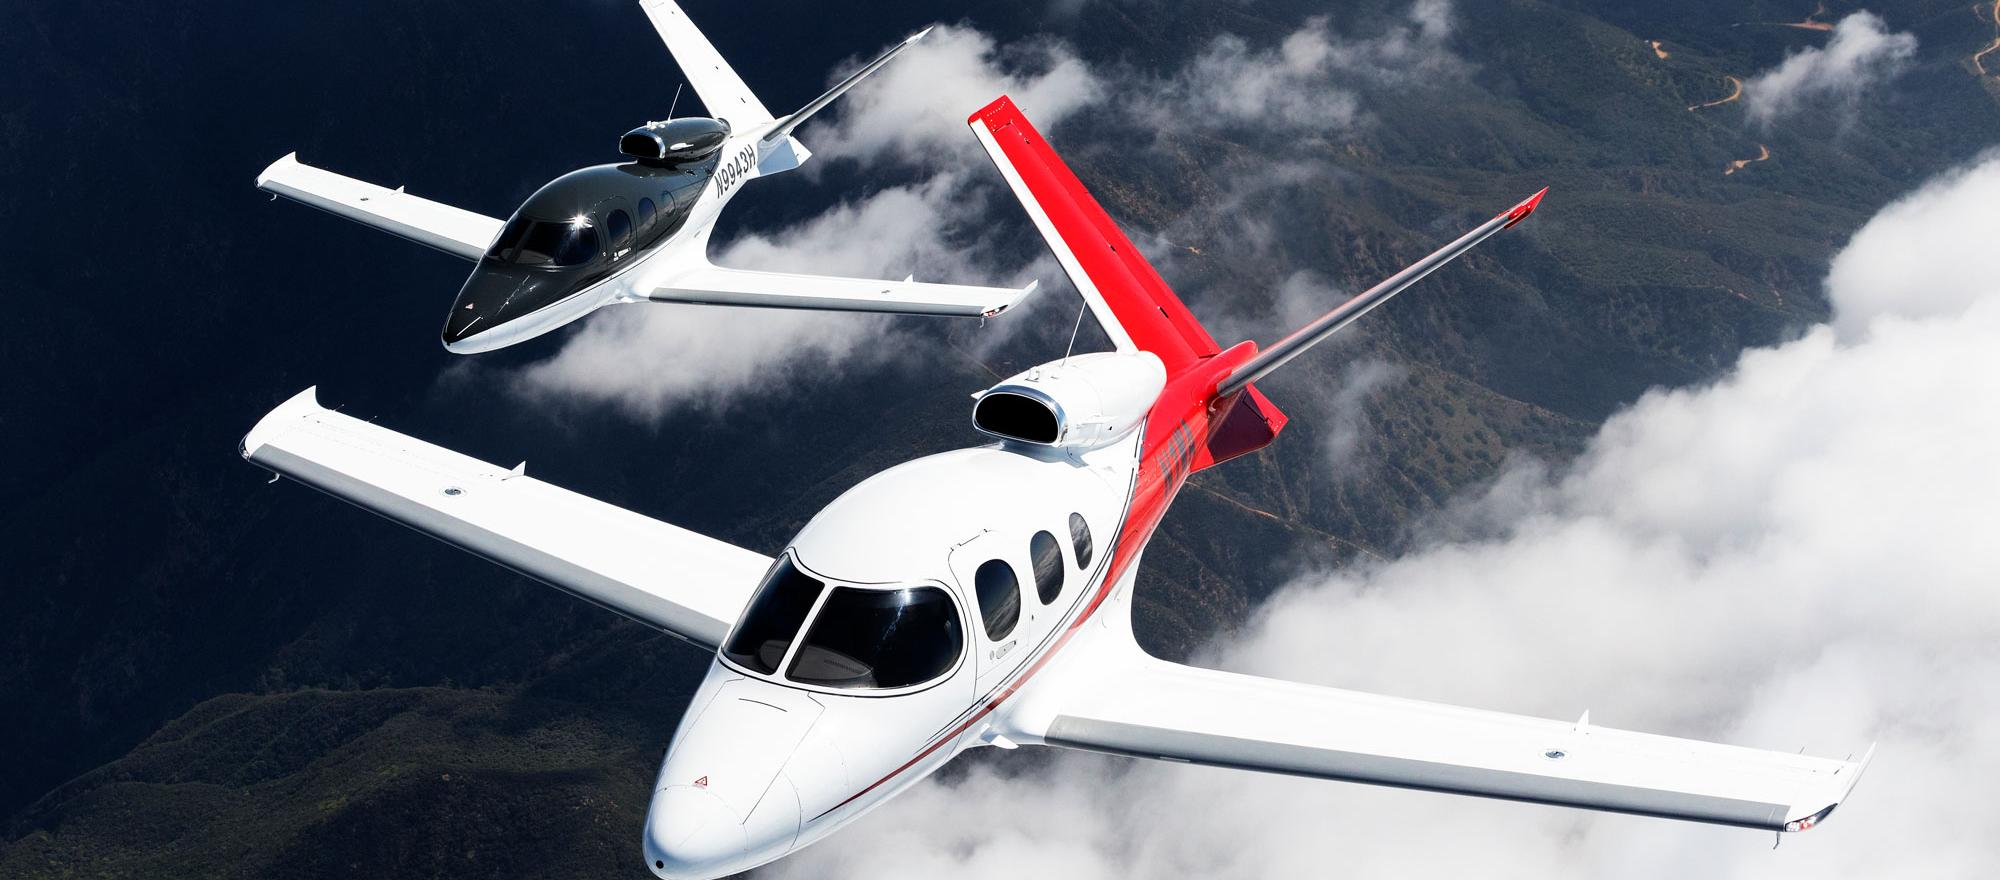 Cirrus SF50s in formation